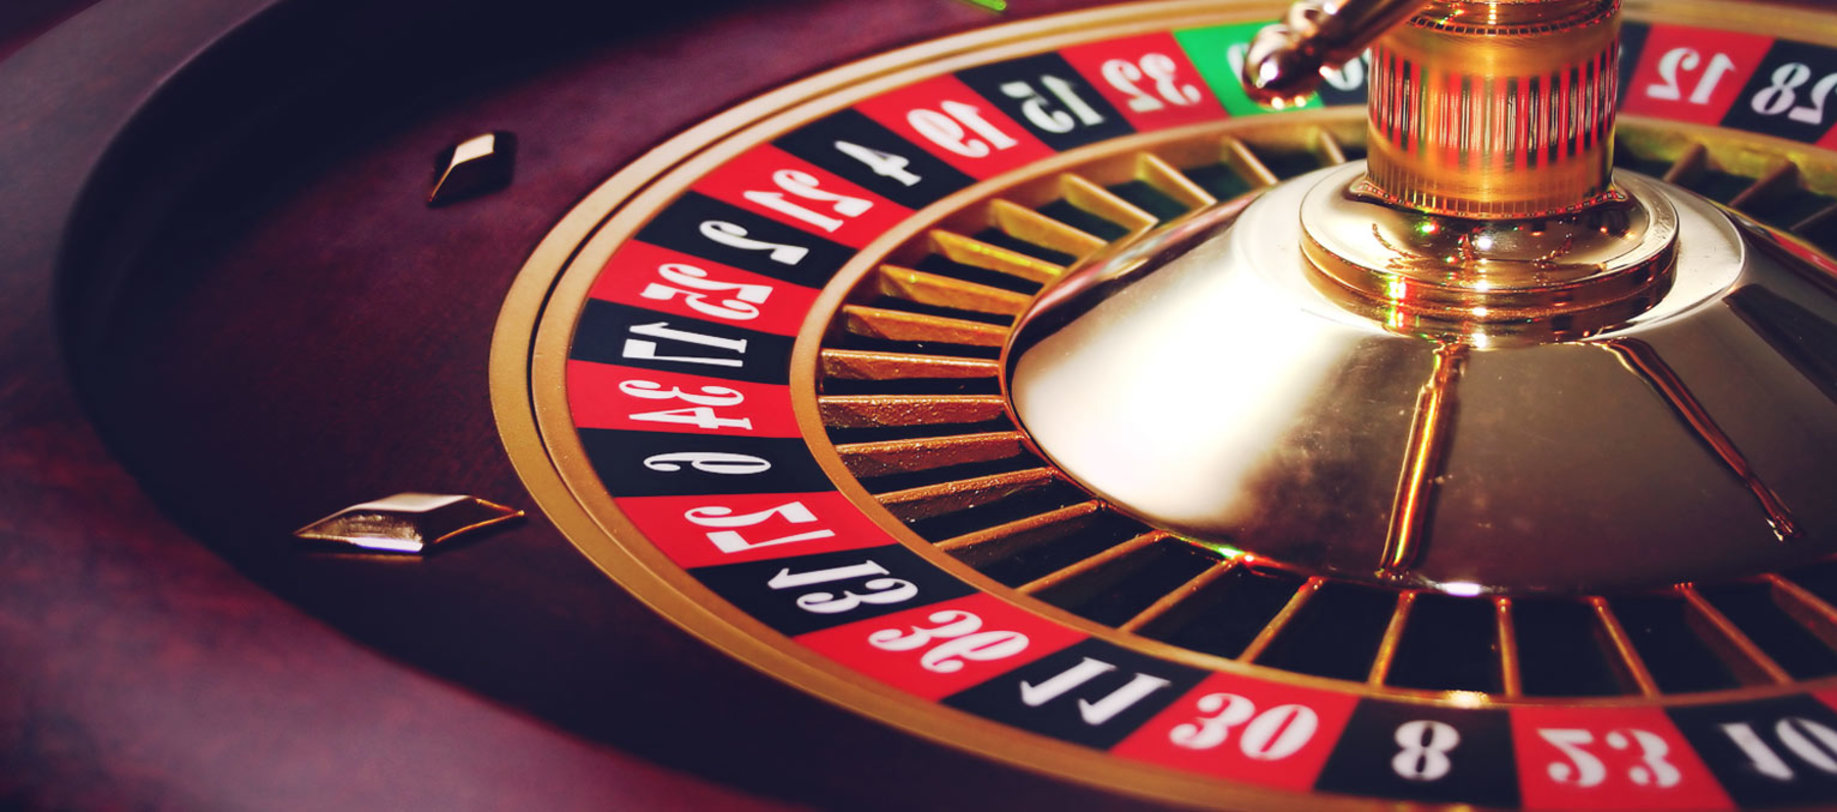 The Betting Platform Will Run At Intersection Of Blockchain